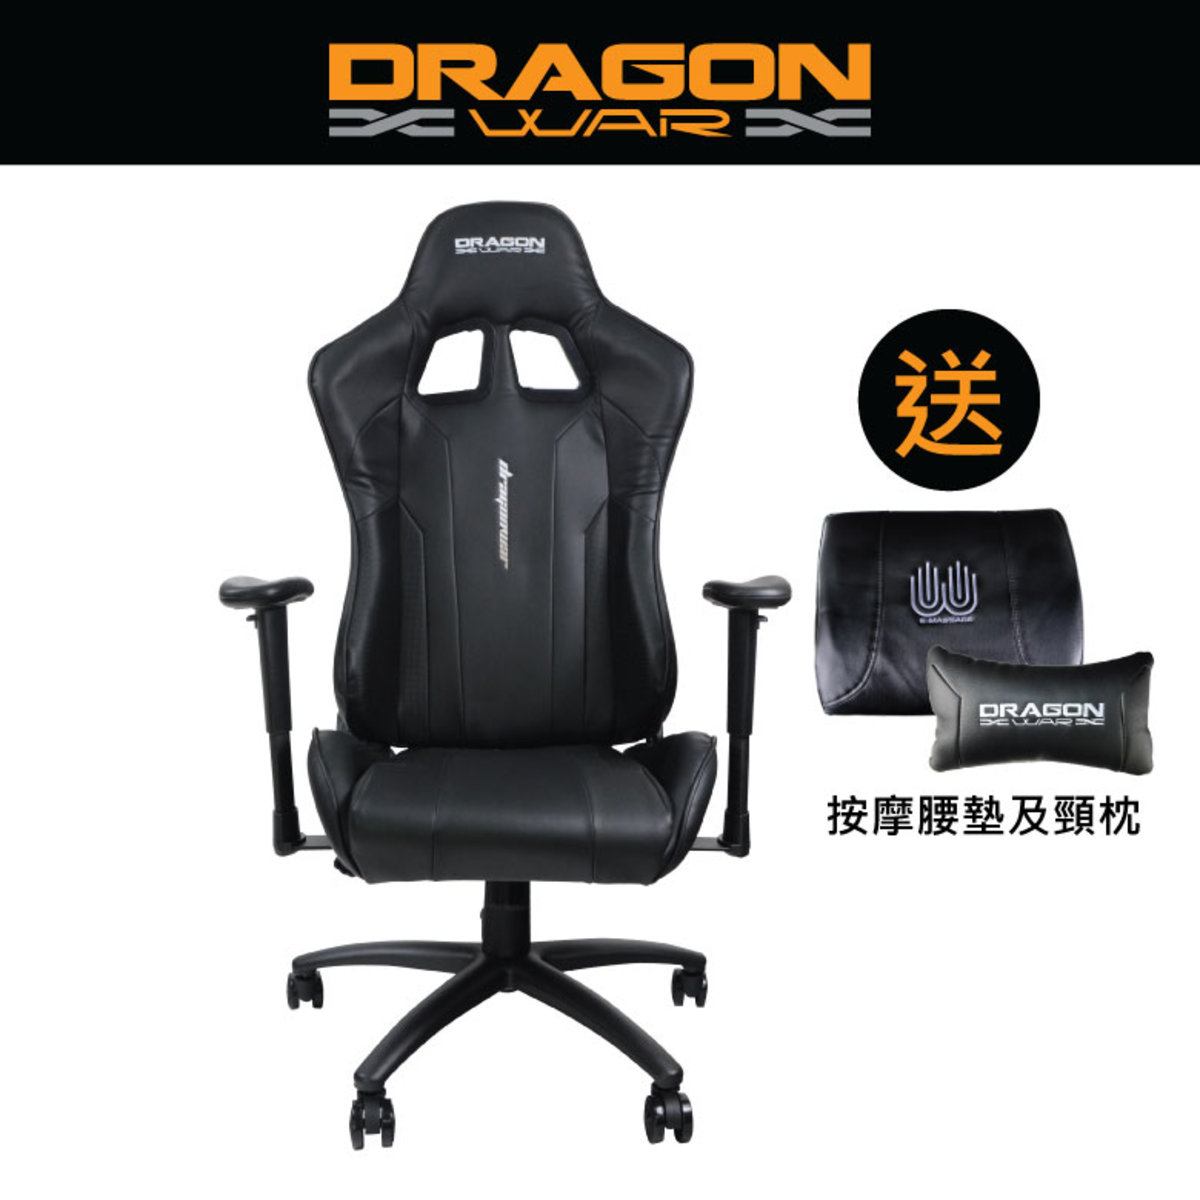 GC-007 Professional Office Gaming Chair Gift Massage Cushion